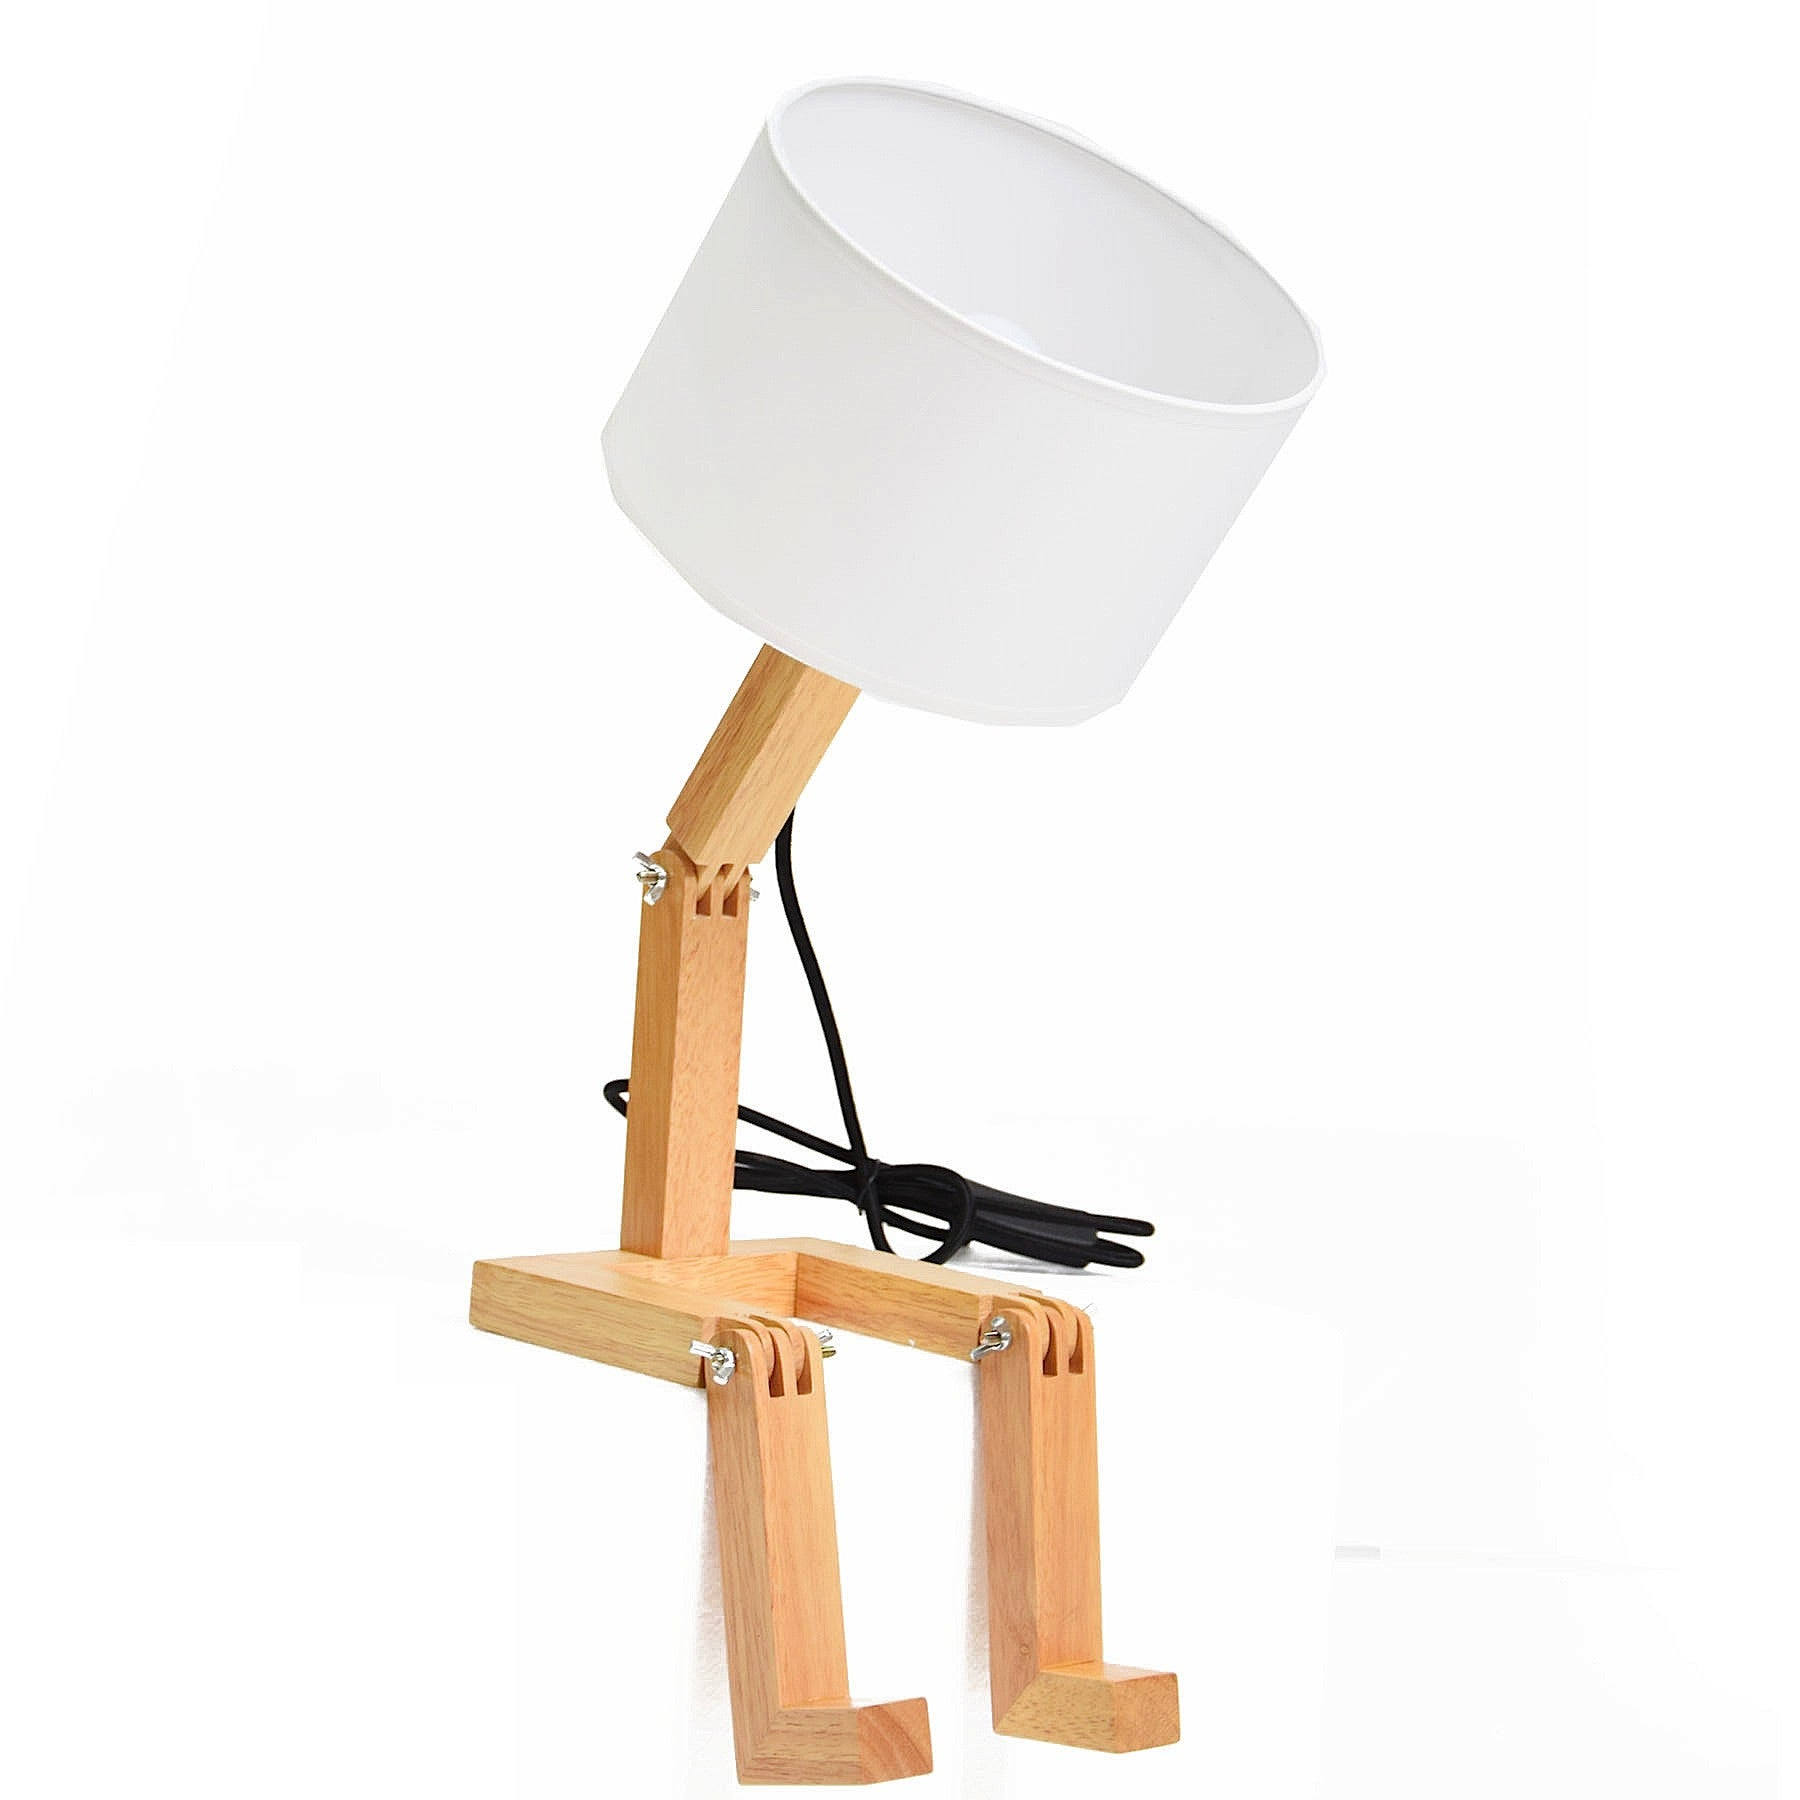 Mr.Lonley Solid Wood table lamp BPMT01-N - ebarza